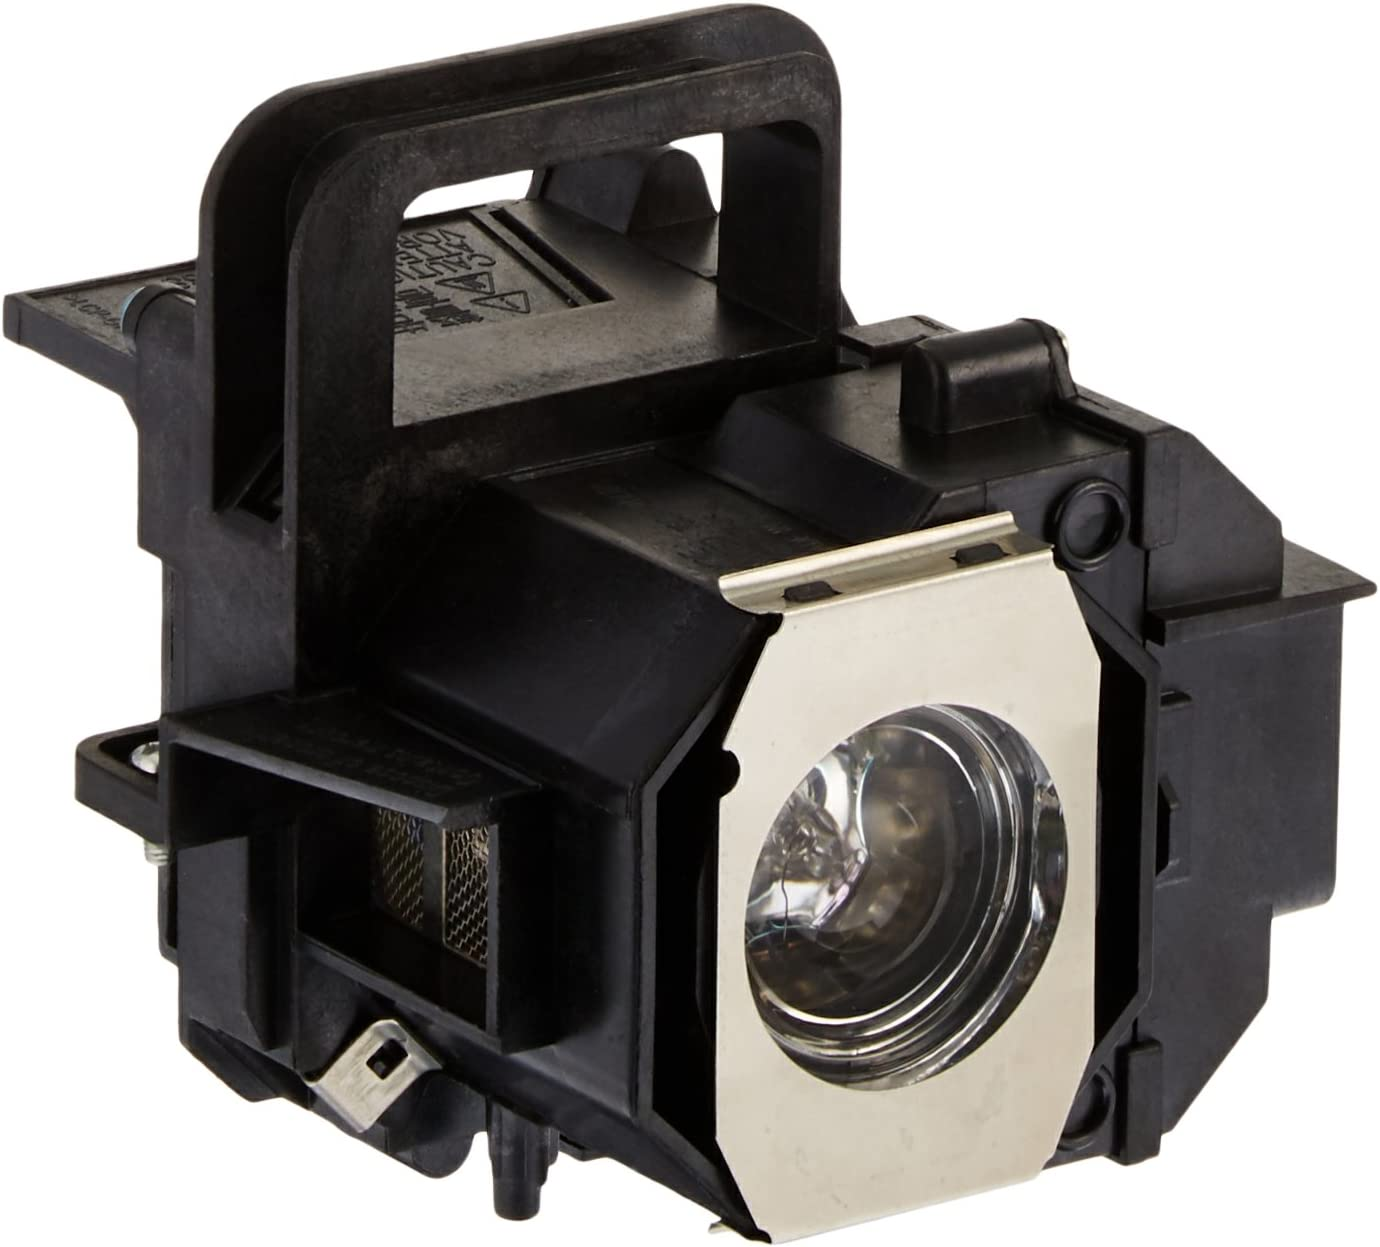 PL9839 LCD Projector Assembly with Original Bulb